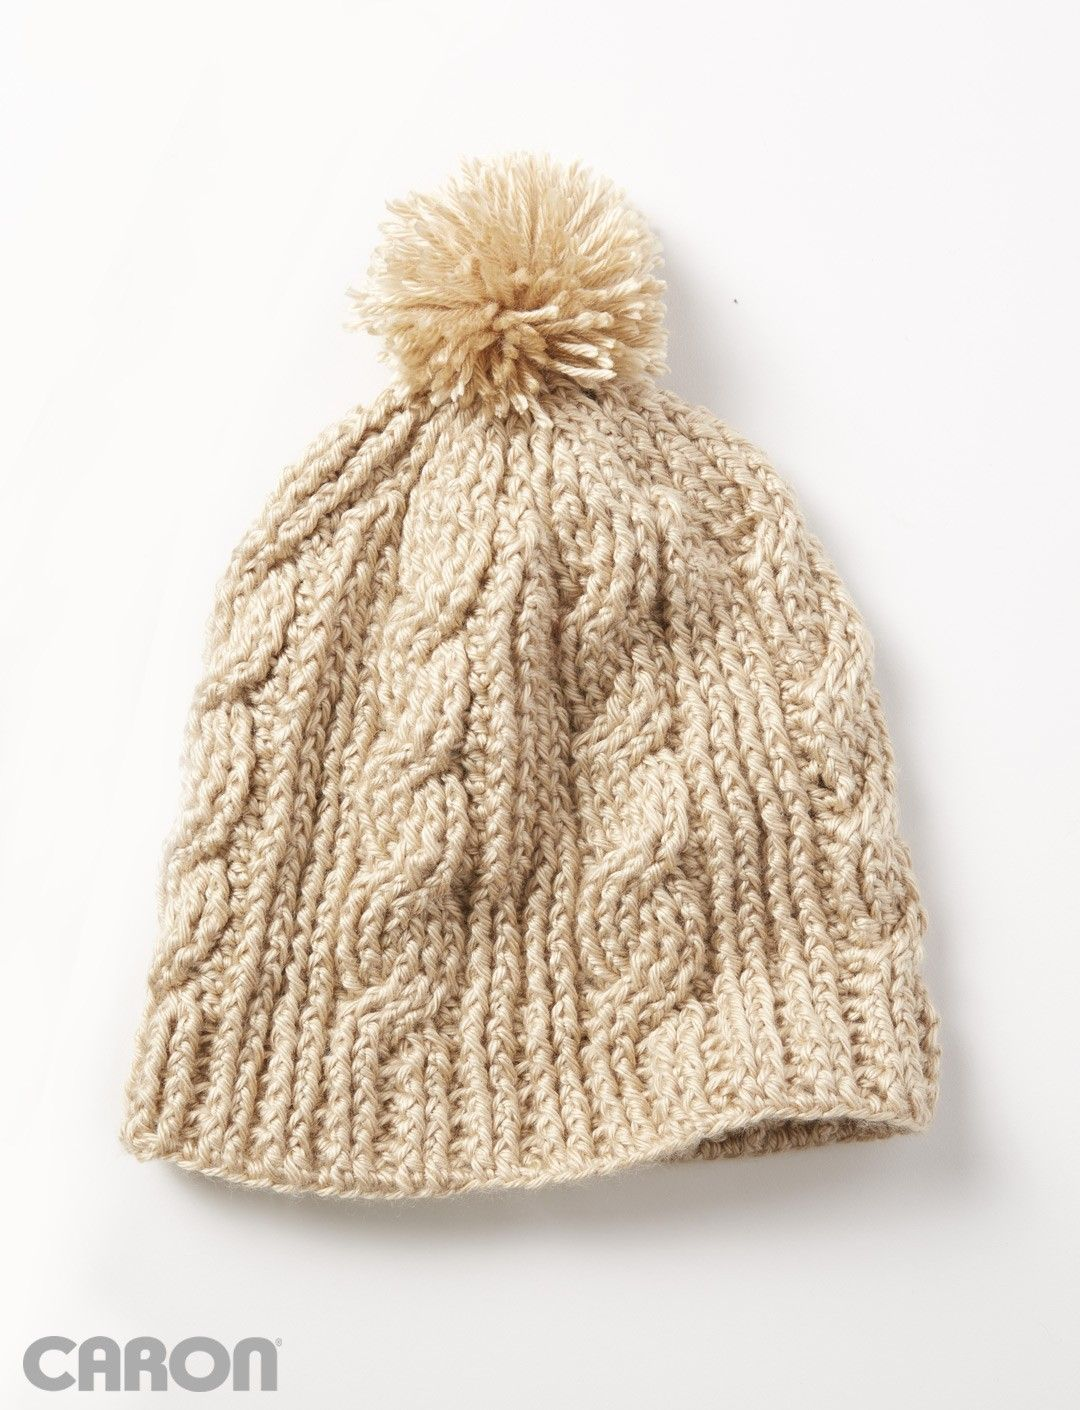 Yarnspirations.com - Caron Cable Twist Hat - Patterns ... bf1891e2f42